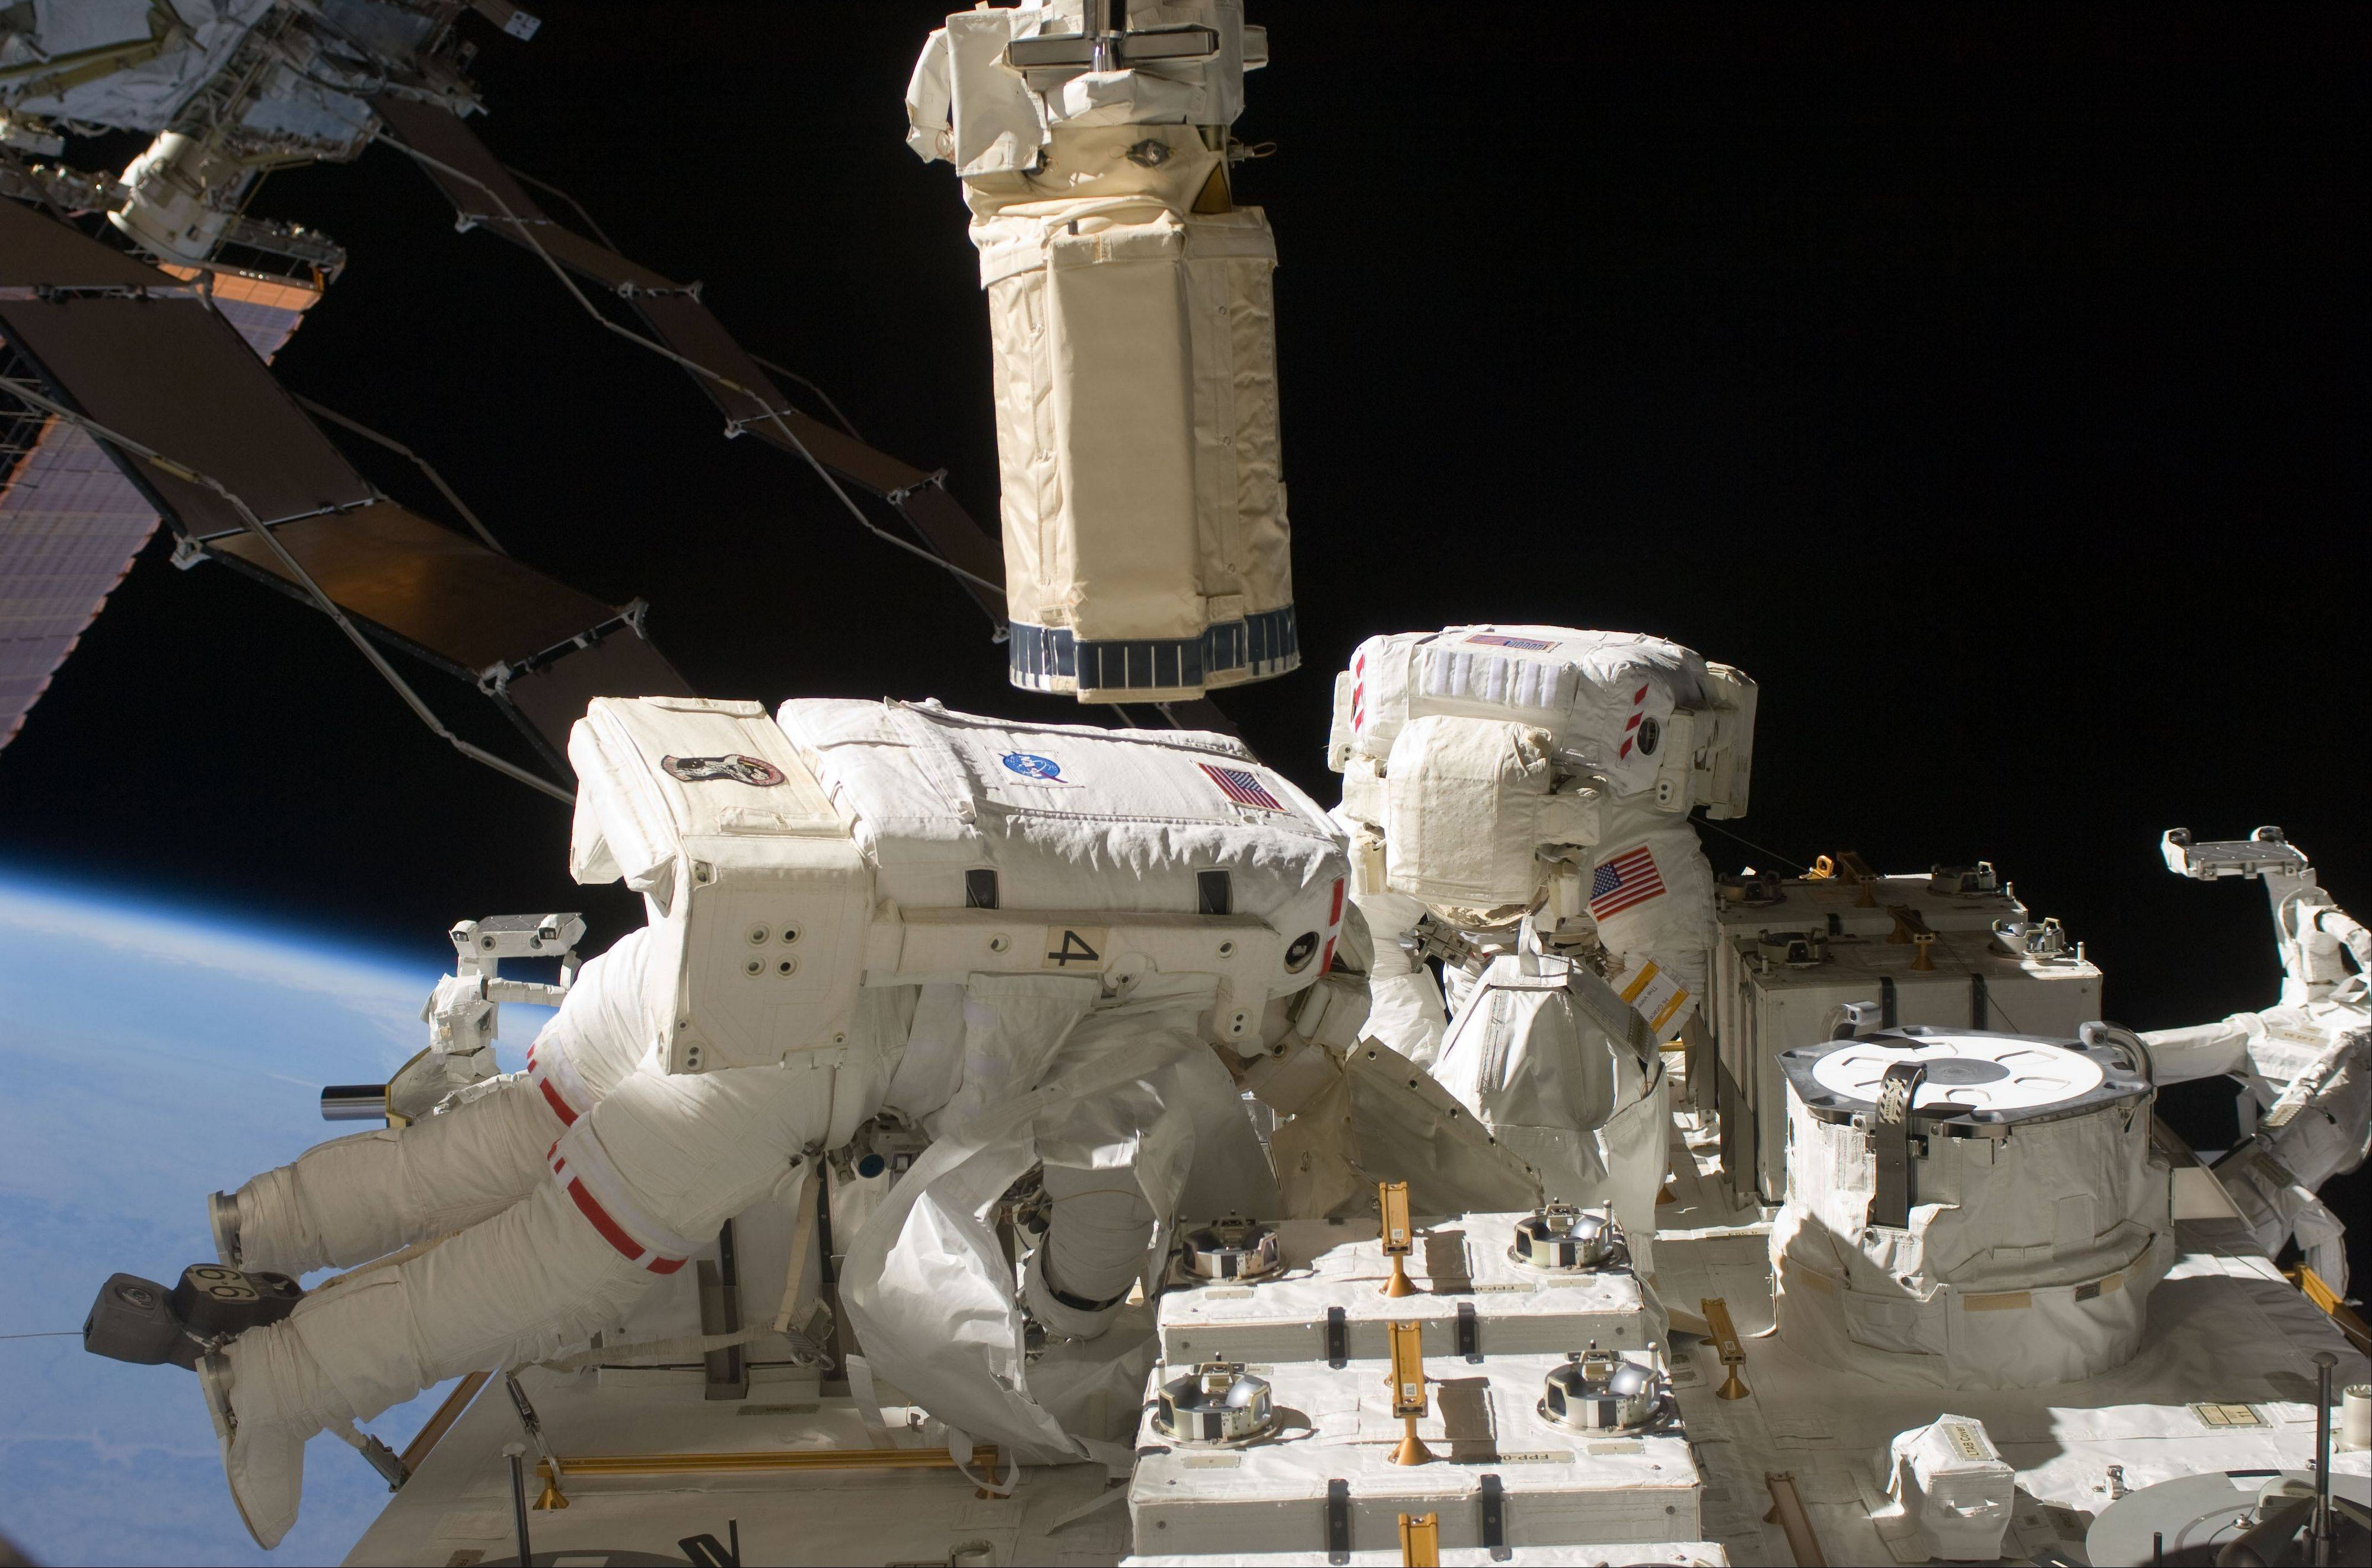 Associated Press/July 27, 2009 Astronauts Tom Marshburn, left, and Christopher Cassidy participate in a spacewalk for maintenance tasks. On Friday the two astronauts are preparing for a possible impromptu spacewalk to work on a leaking ammonia coolant line.